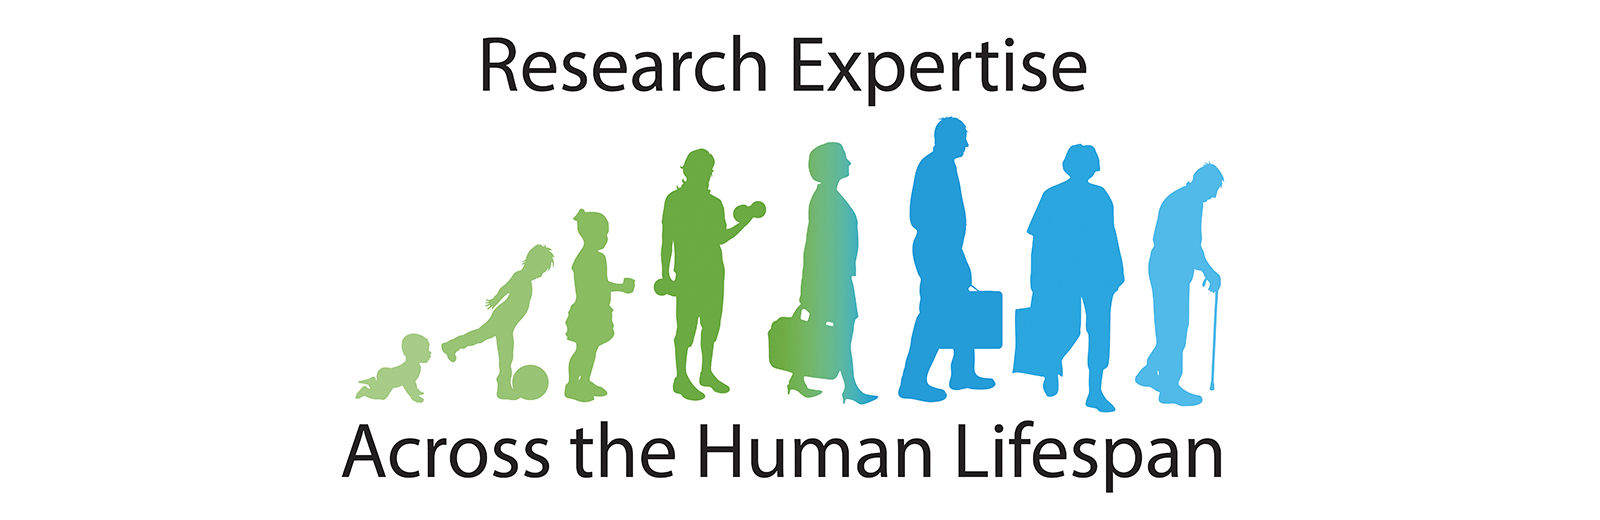 Research Expertise Across the Human Lifespan